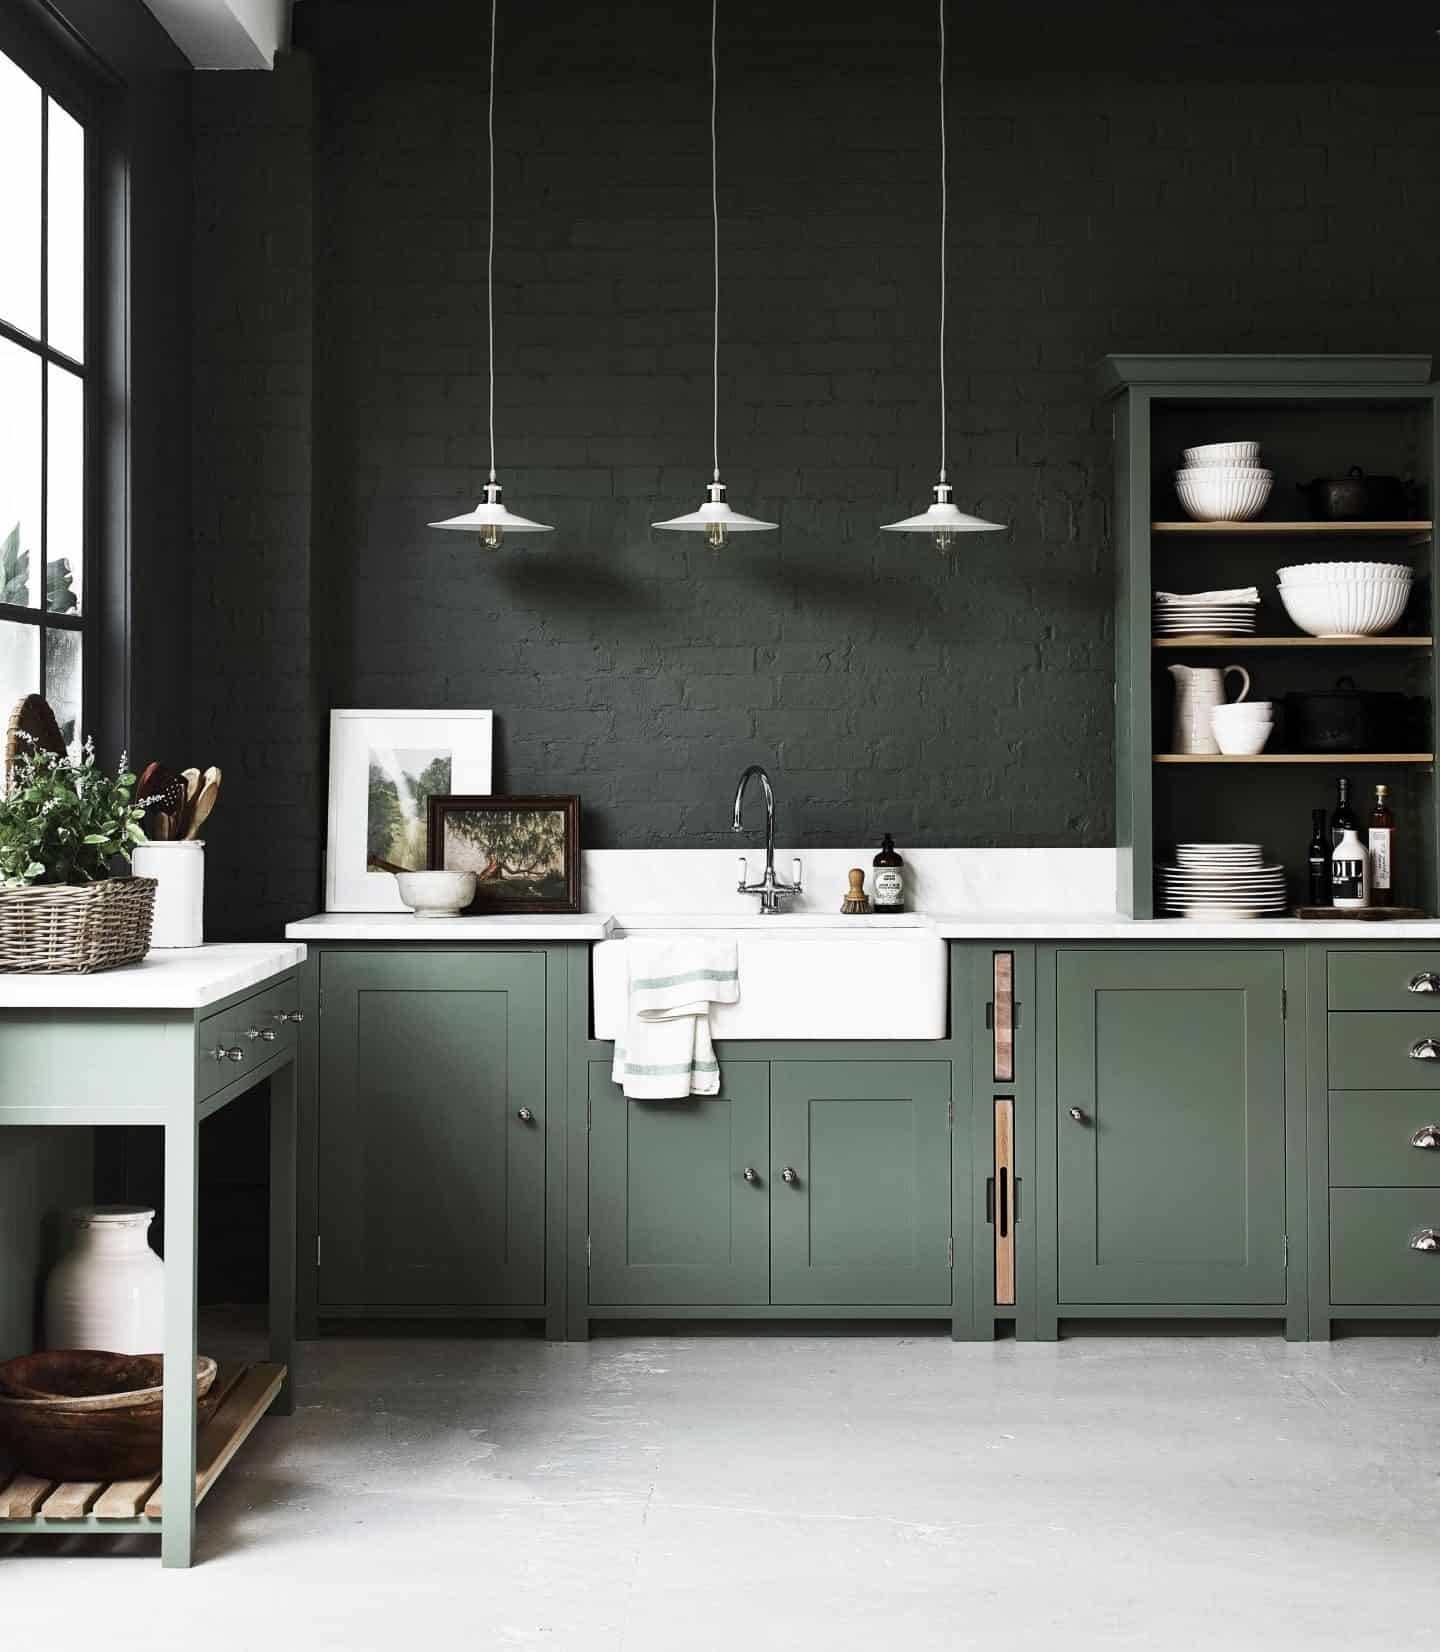 Neptune Suffolk kitchen hand-painted in Cactus from £12,000